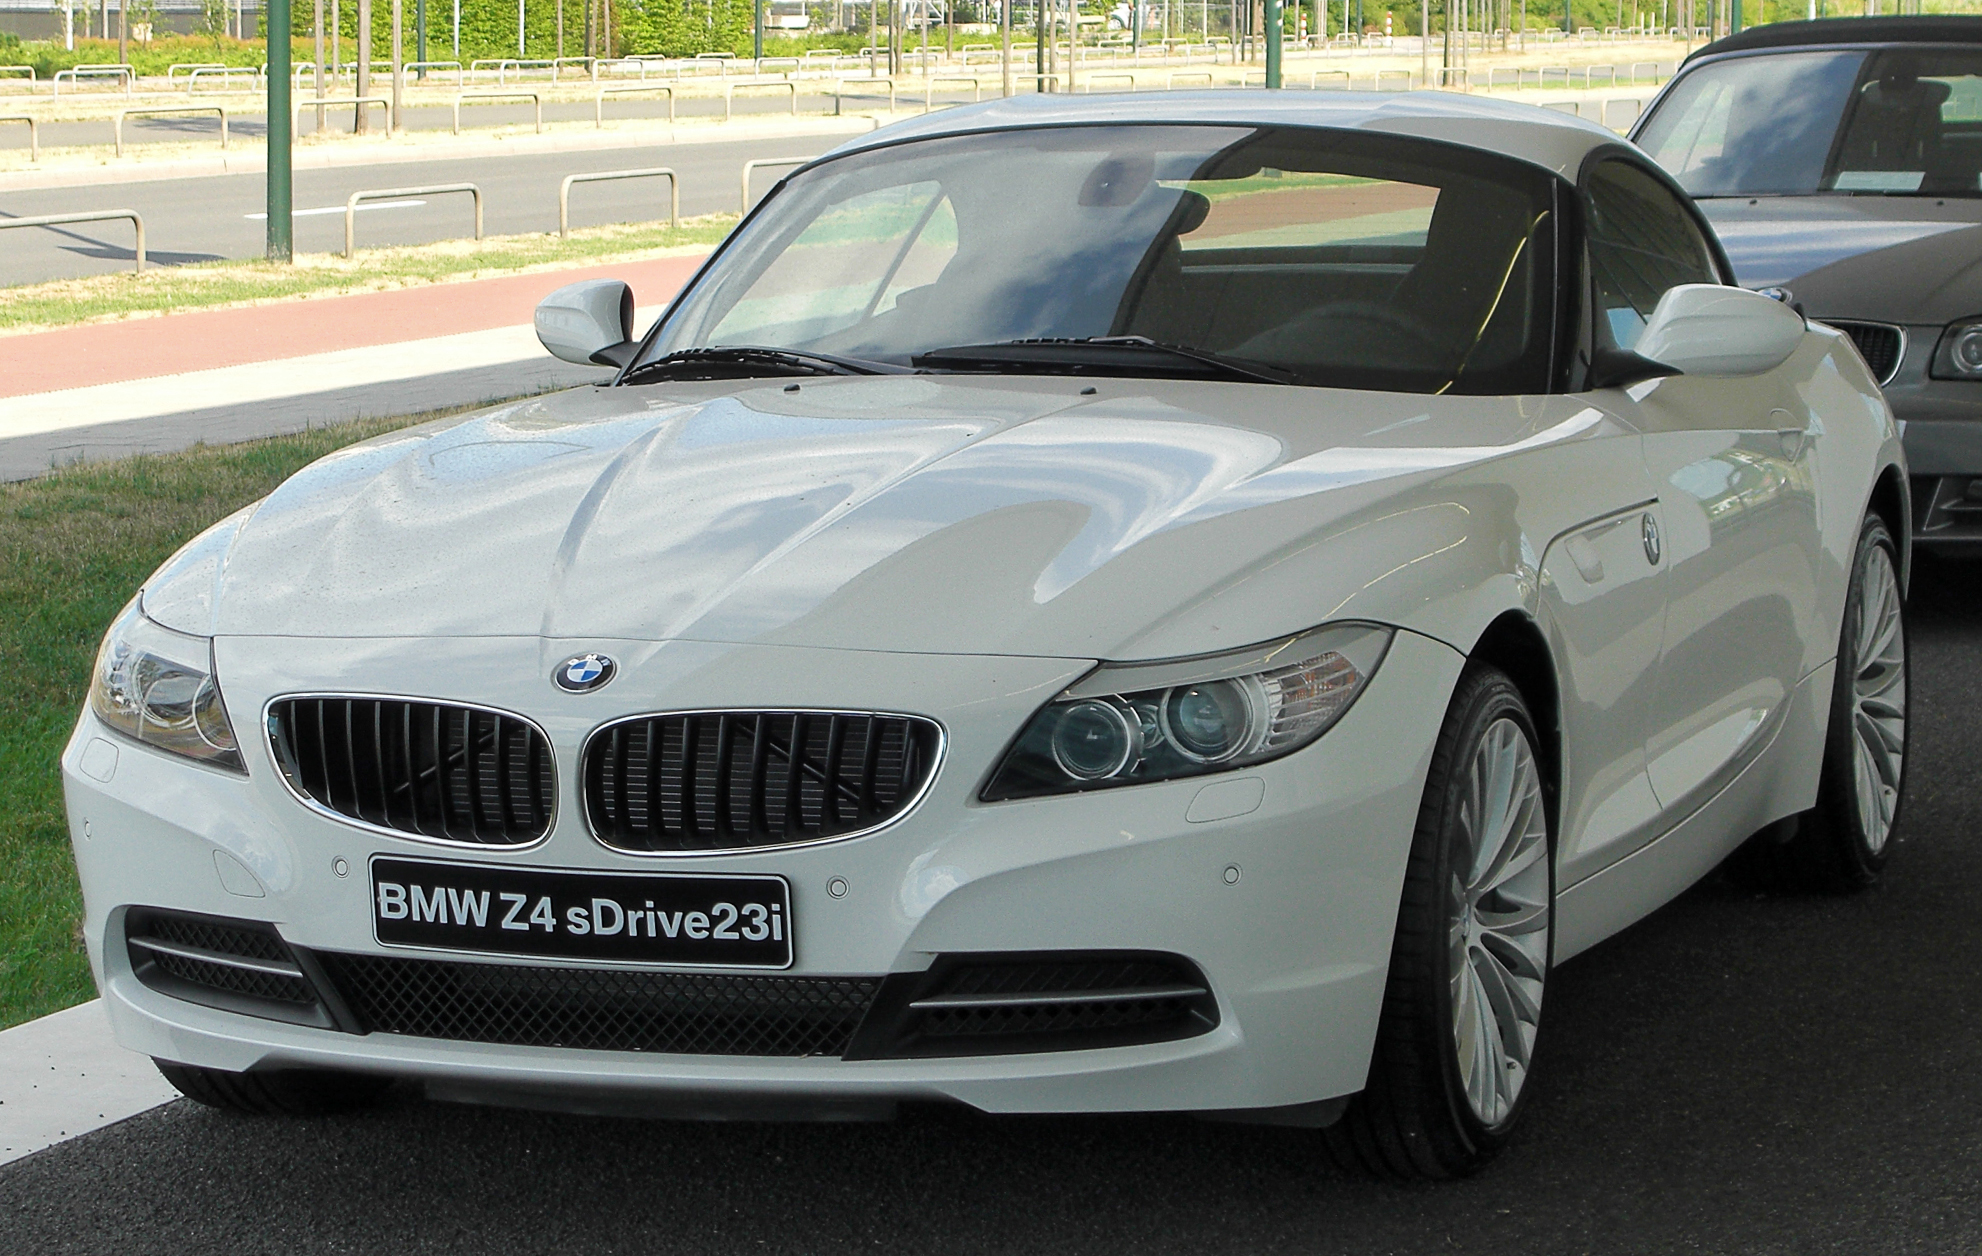 file bmw z4 sdrive23i e89 front wikimedia commons. Black Bedroom Furniture Sets. Home Design Ideas